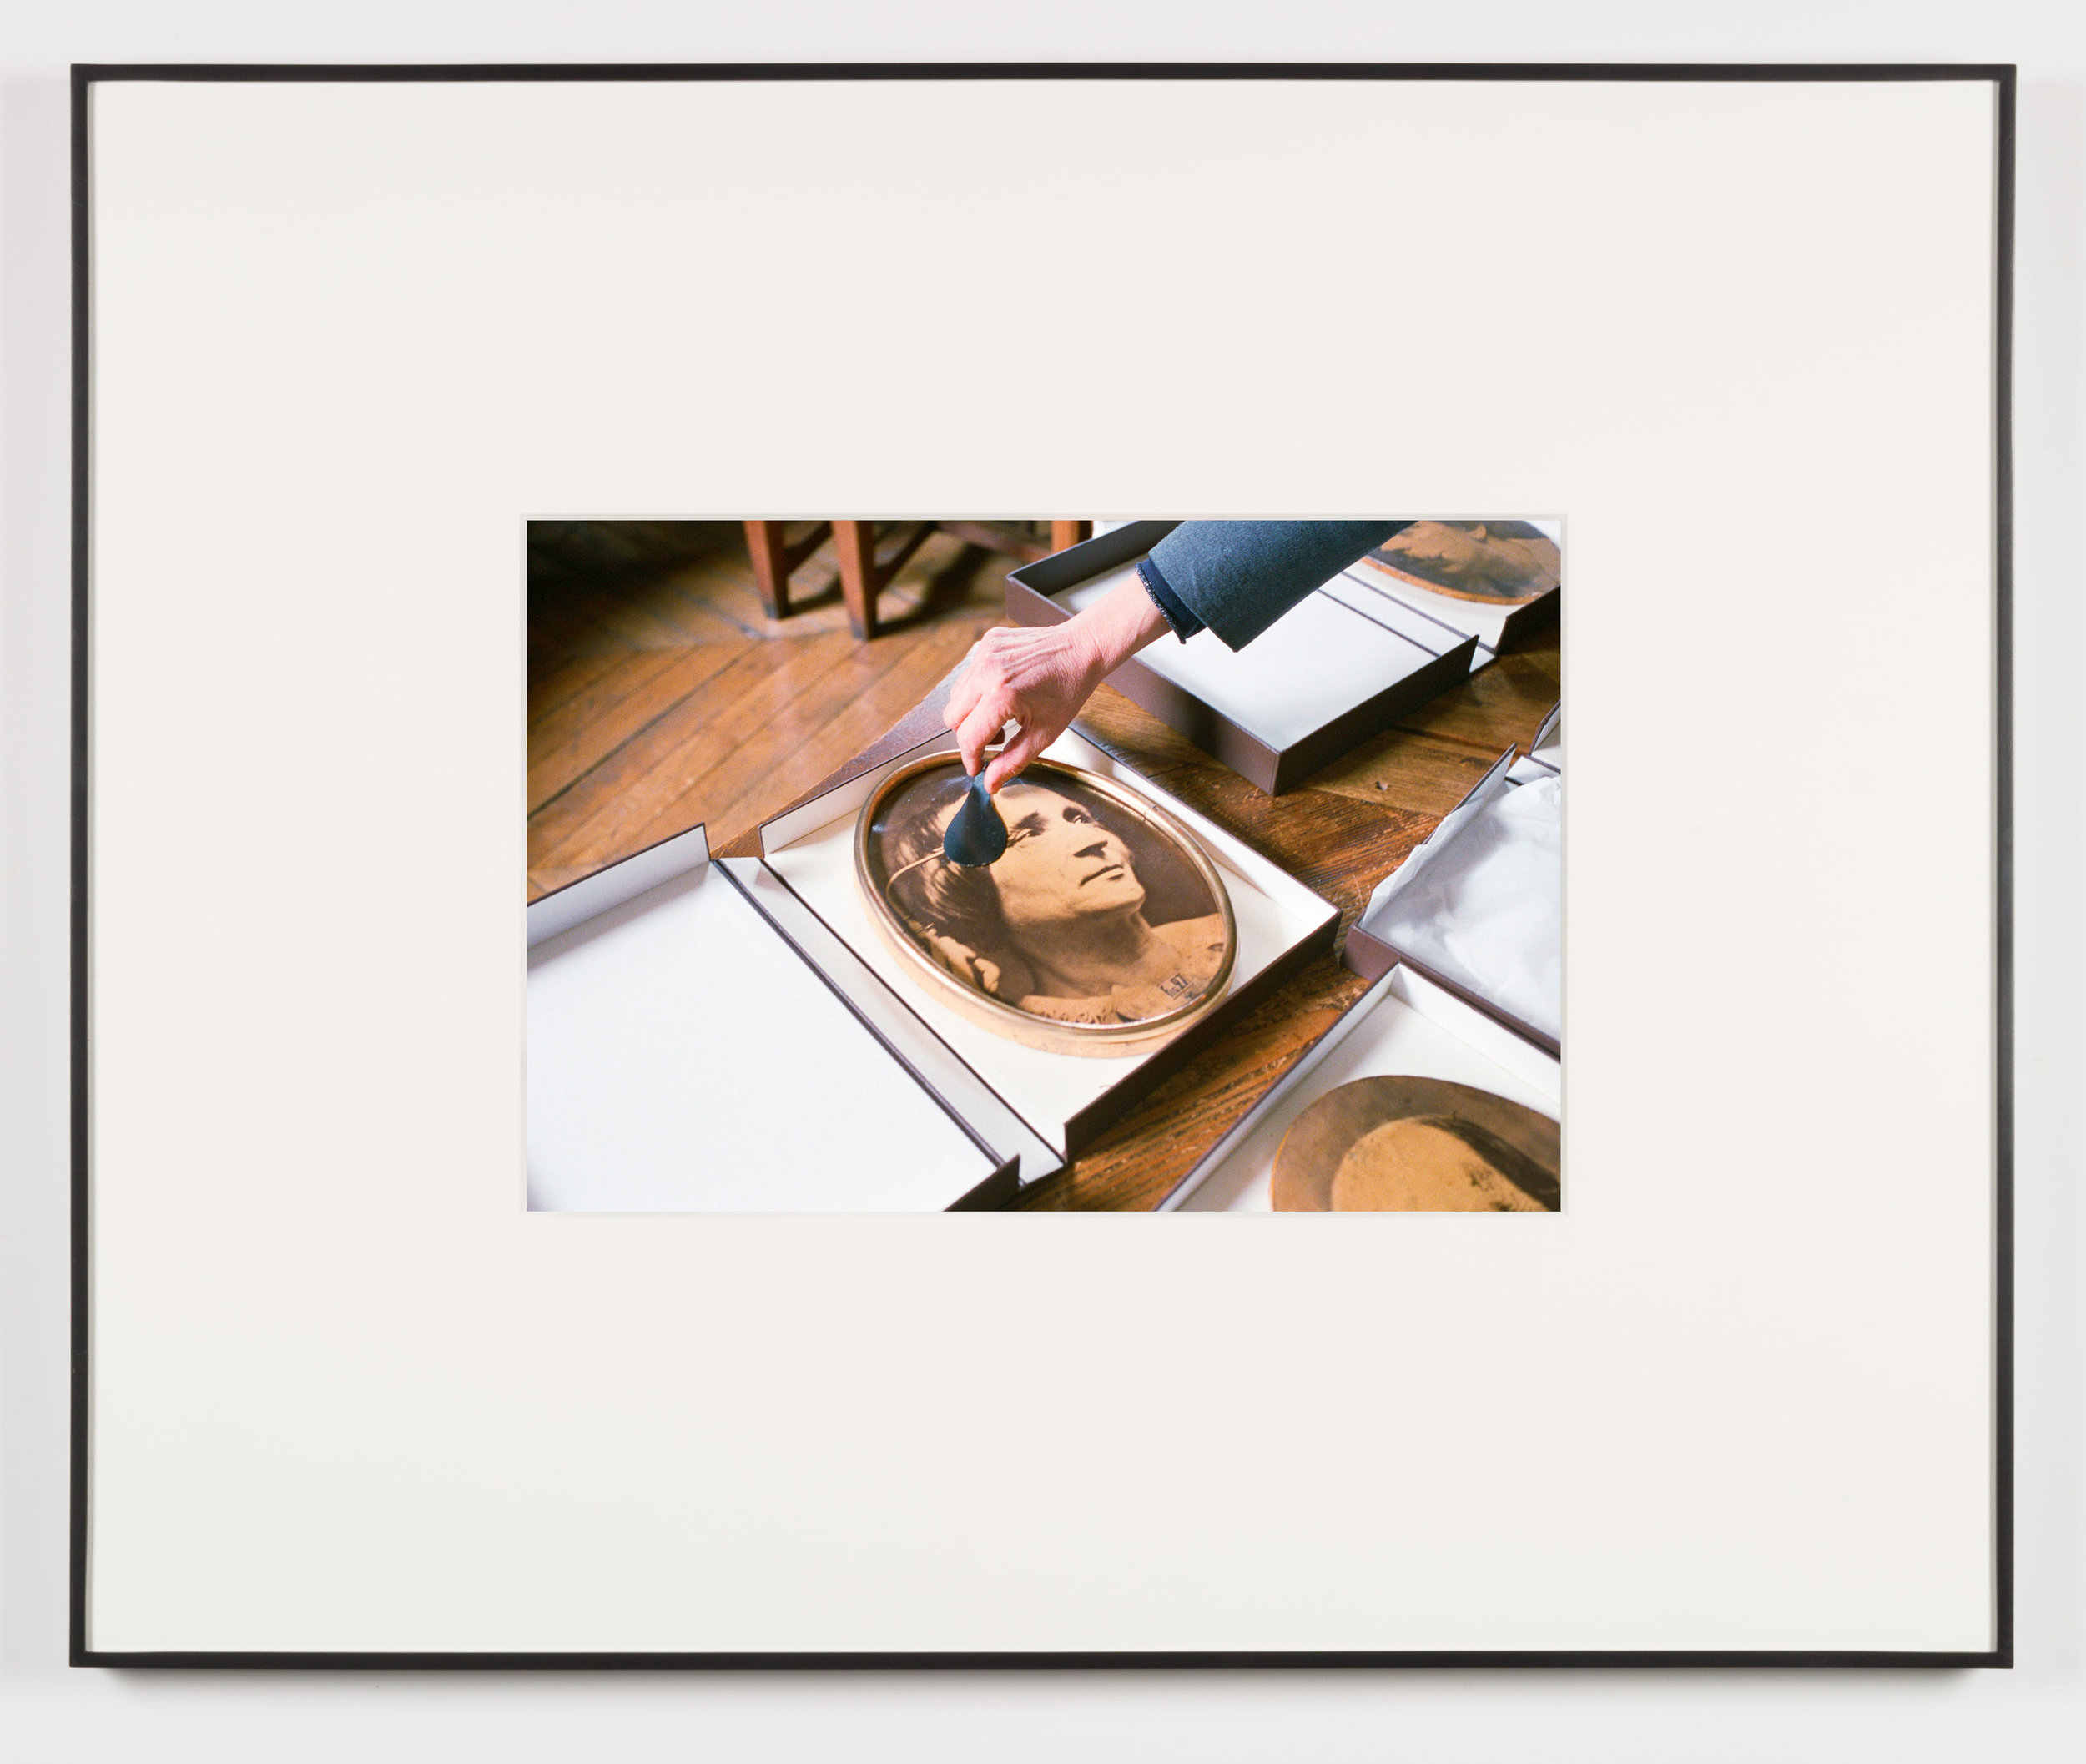 Die Ideale der Väter (Paris, France, March 12, 2013)   2014  Chromogenic print  13 1/2 x 20 inches   Art Handling, 2011–    Selected Bodies of Work, 2014